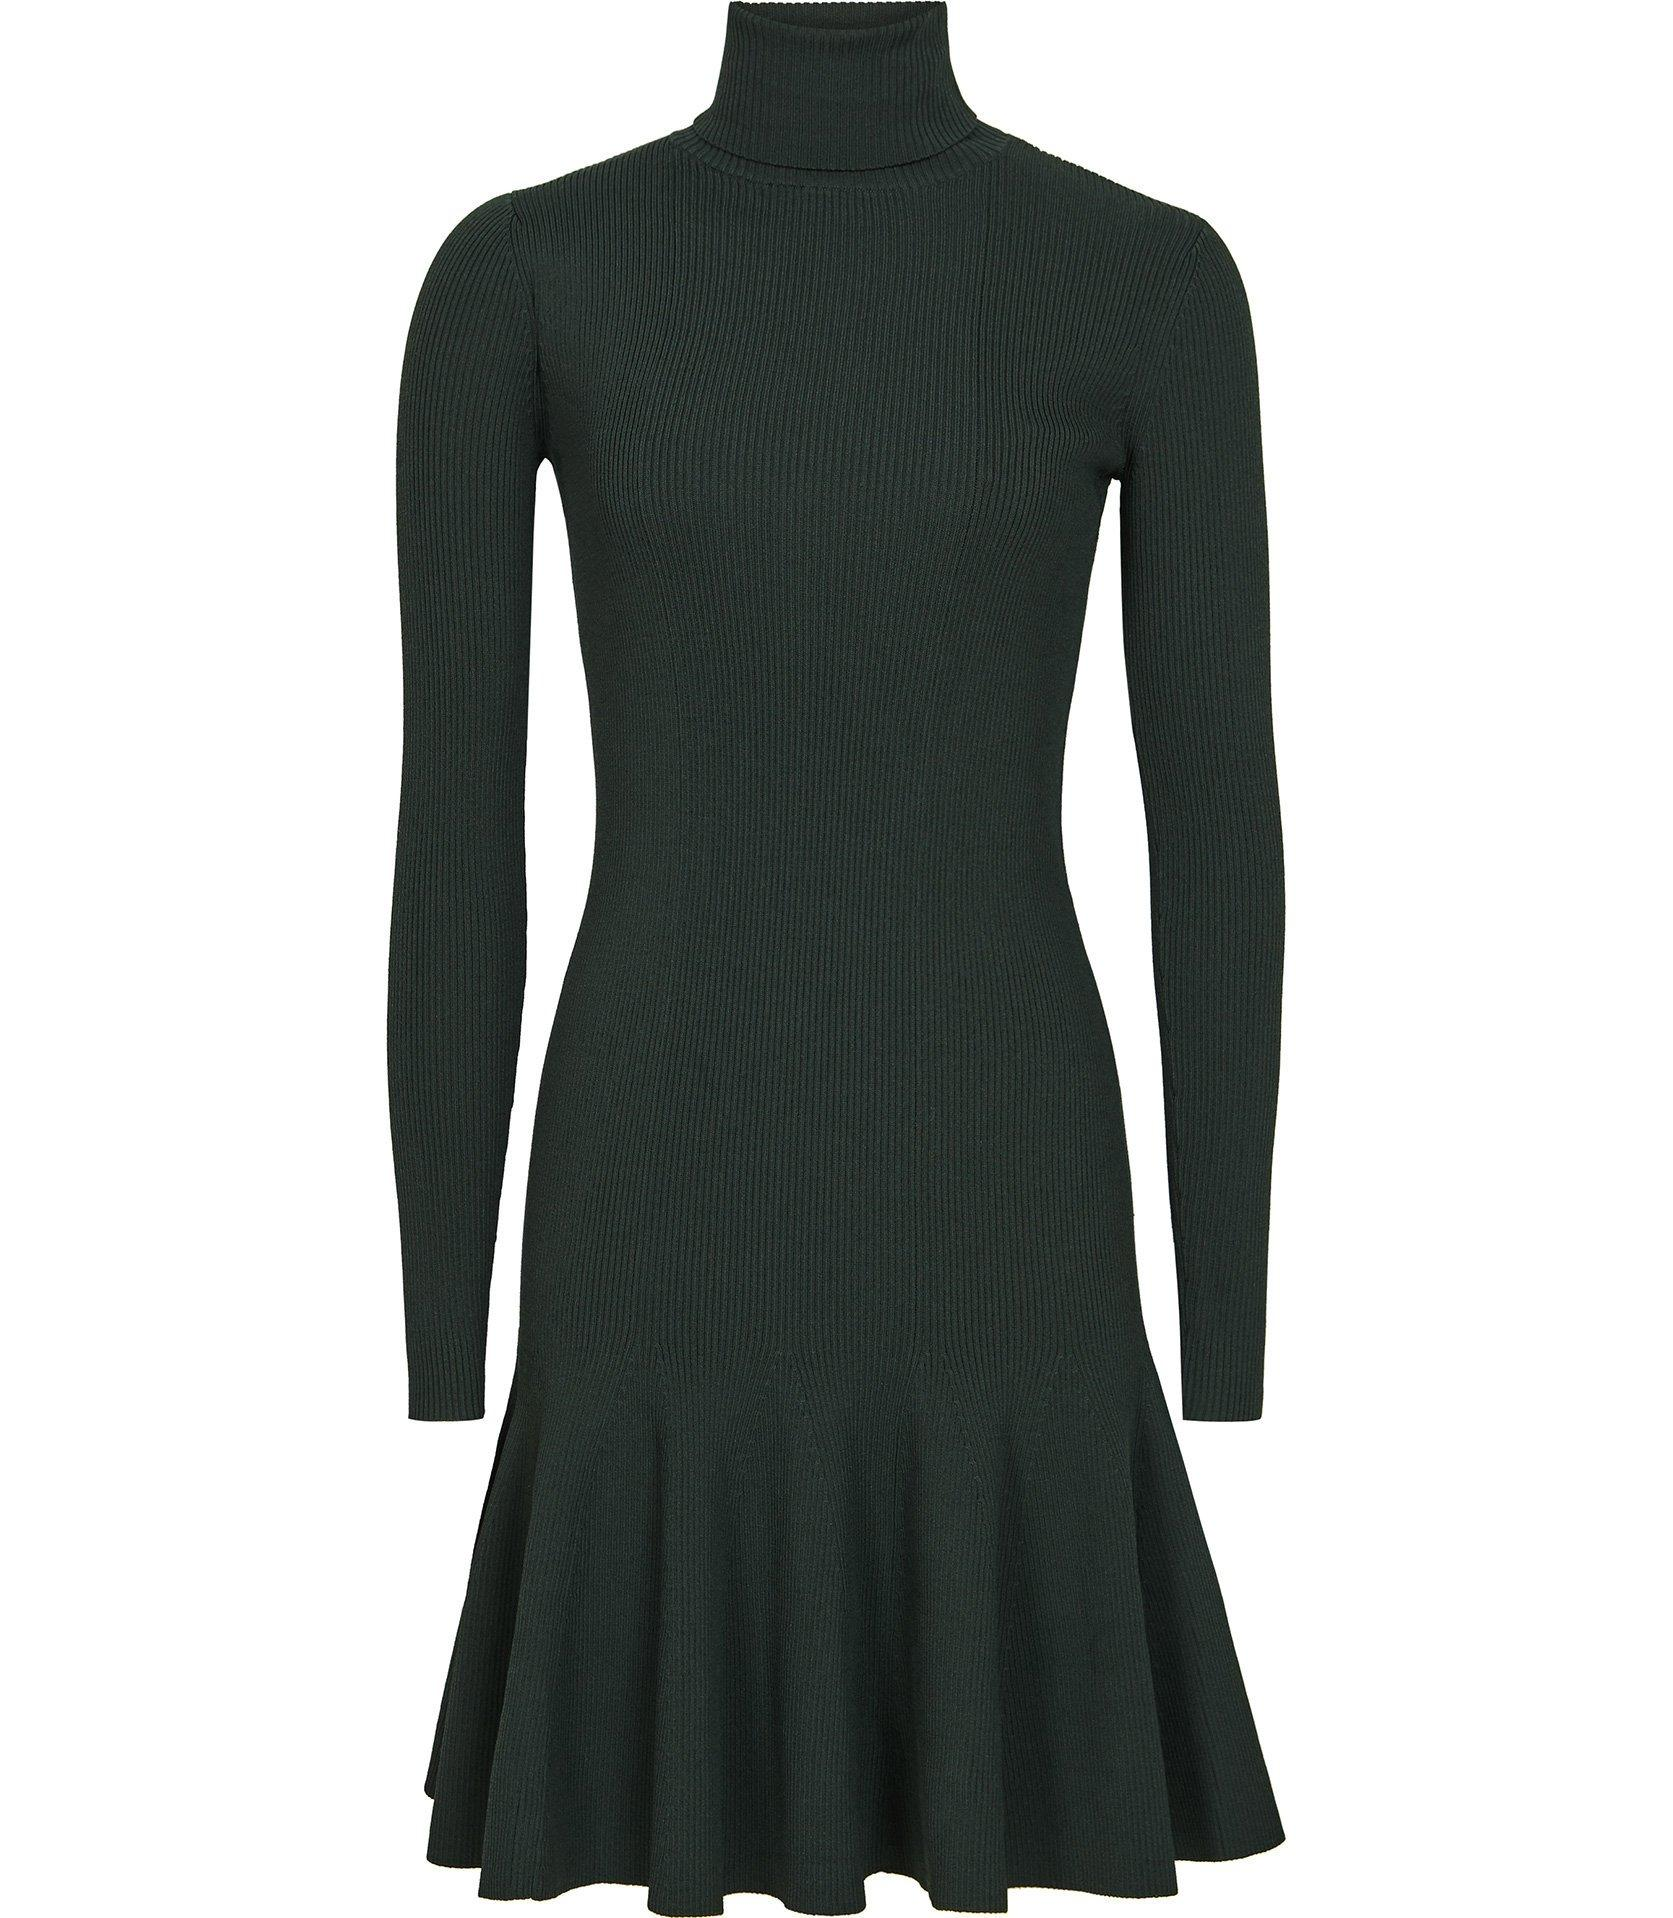 520da9aa09 Reiss - Green Mimi - Knitted Flippy Hem Dress - Lyst. View fullscreen